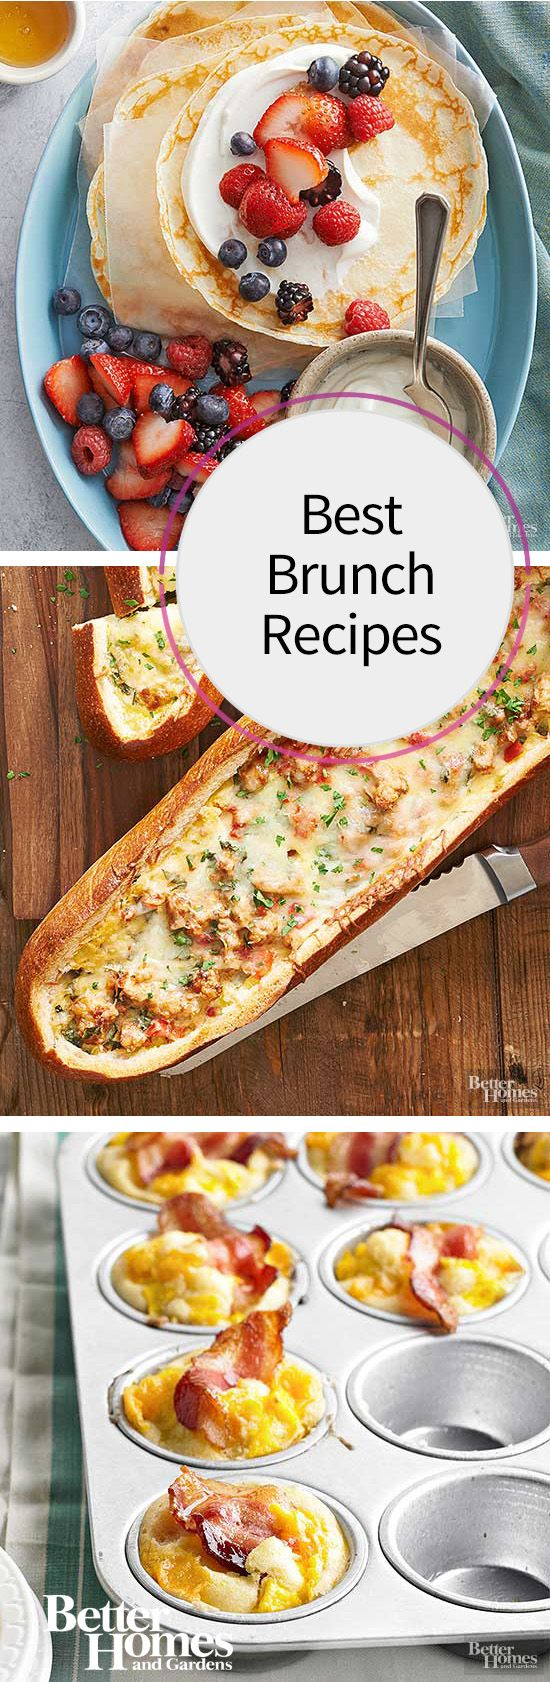 Whether you're planning a simple brunch for a small group or an Easter brunch to wow your crowd, we've got just the right brunch recipe ideas for you. Choose from sweet pancakes, savory breakfast sandwiches, hearty egg casser